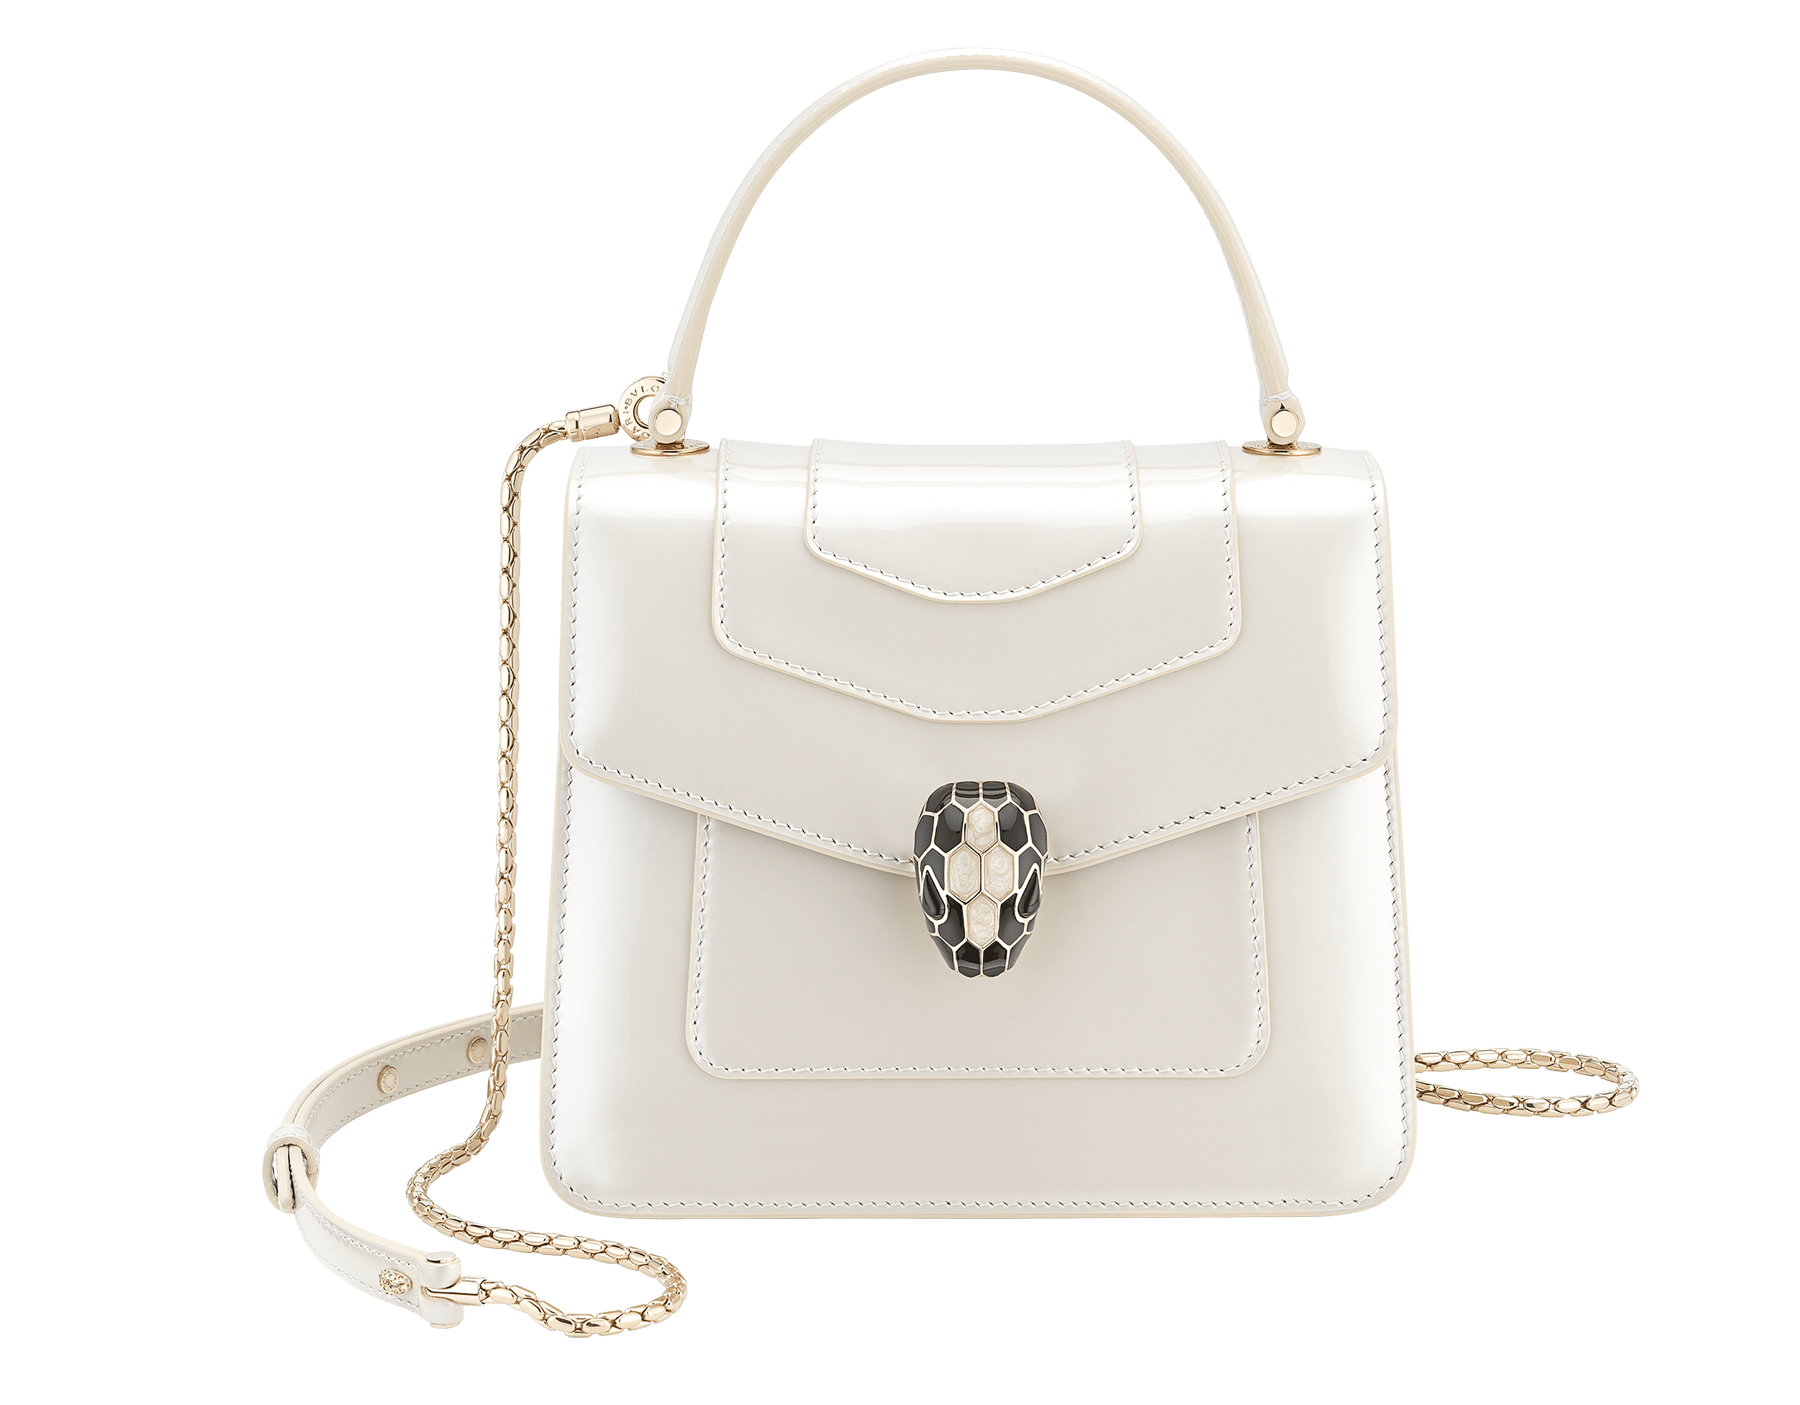 """Serpenti Forever "" crossbody bag in white agate leather with a varnished and pearled effect. Iconic snake head closure in light gold plated brass enriched with black and pearled white agate enamel, and black onyx eyes 289770 image 1"